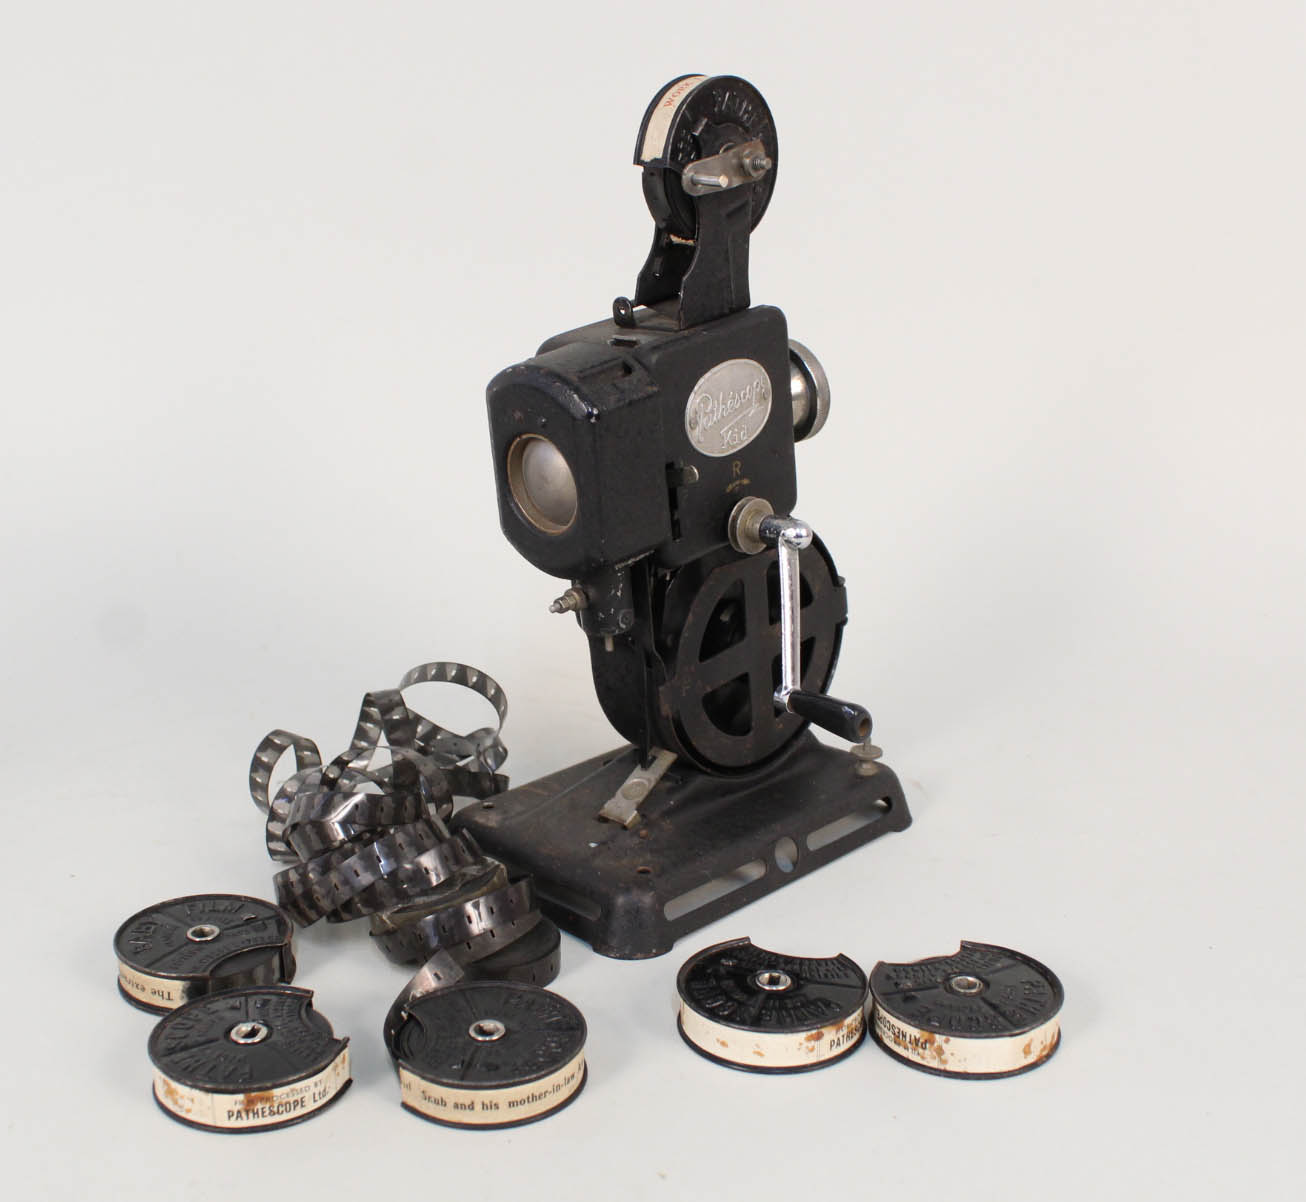 Lot 38 - A Pathe kid projector and films including The Extraction of Coal and Snub and His Mother in Law